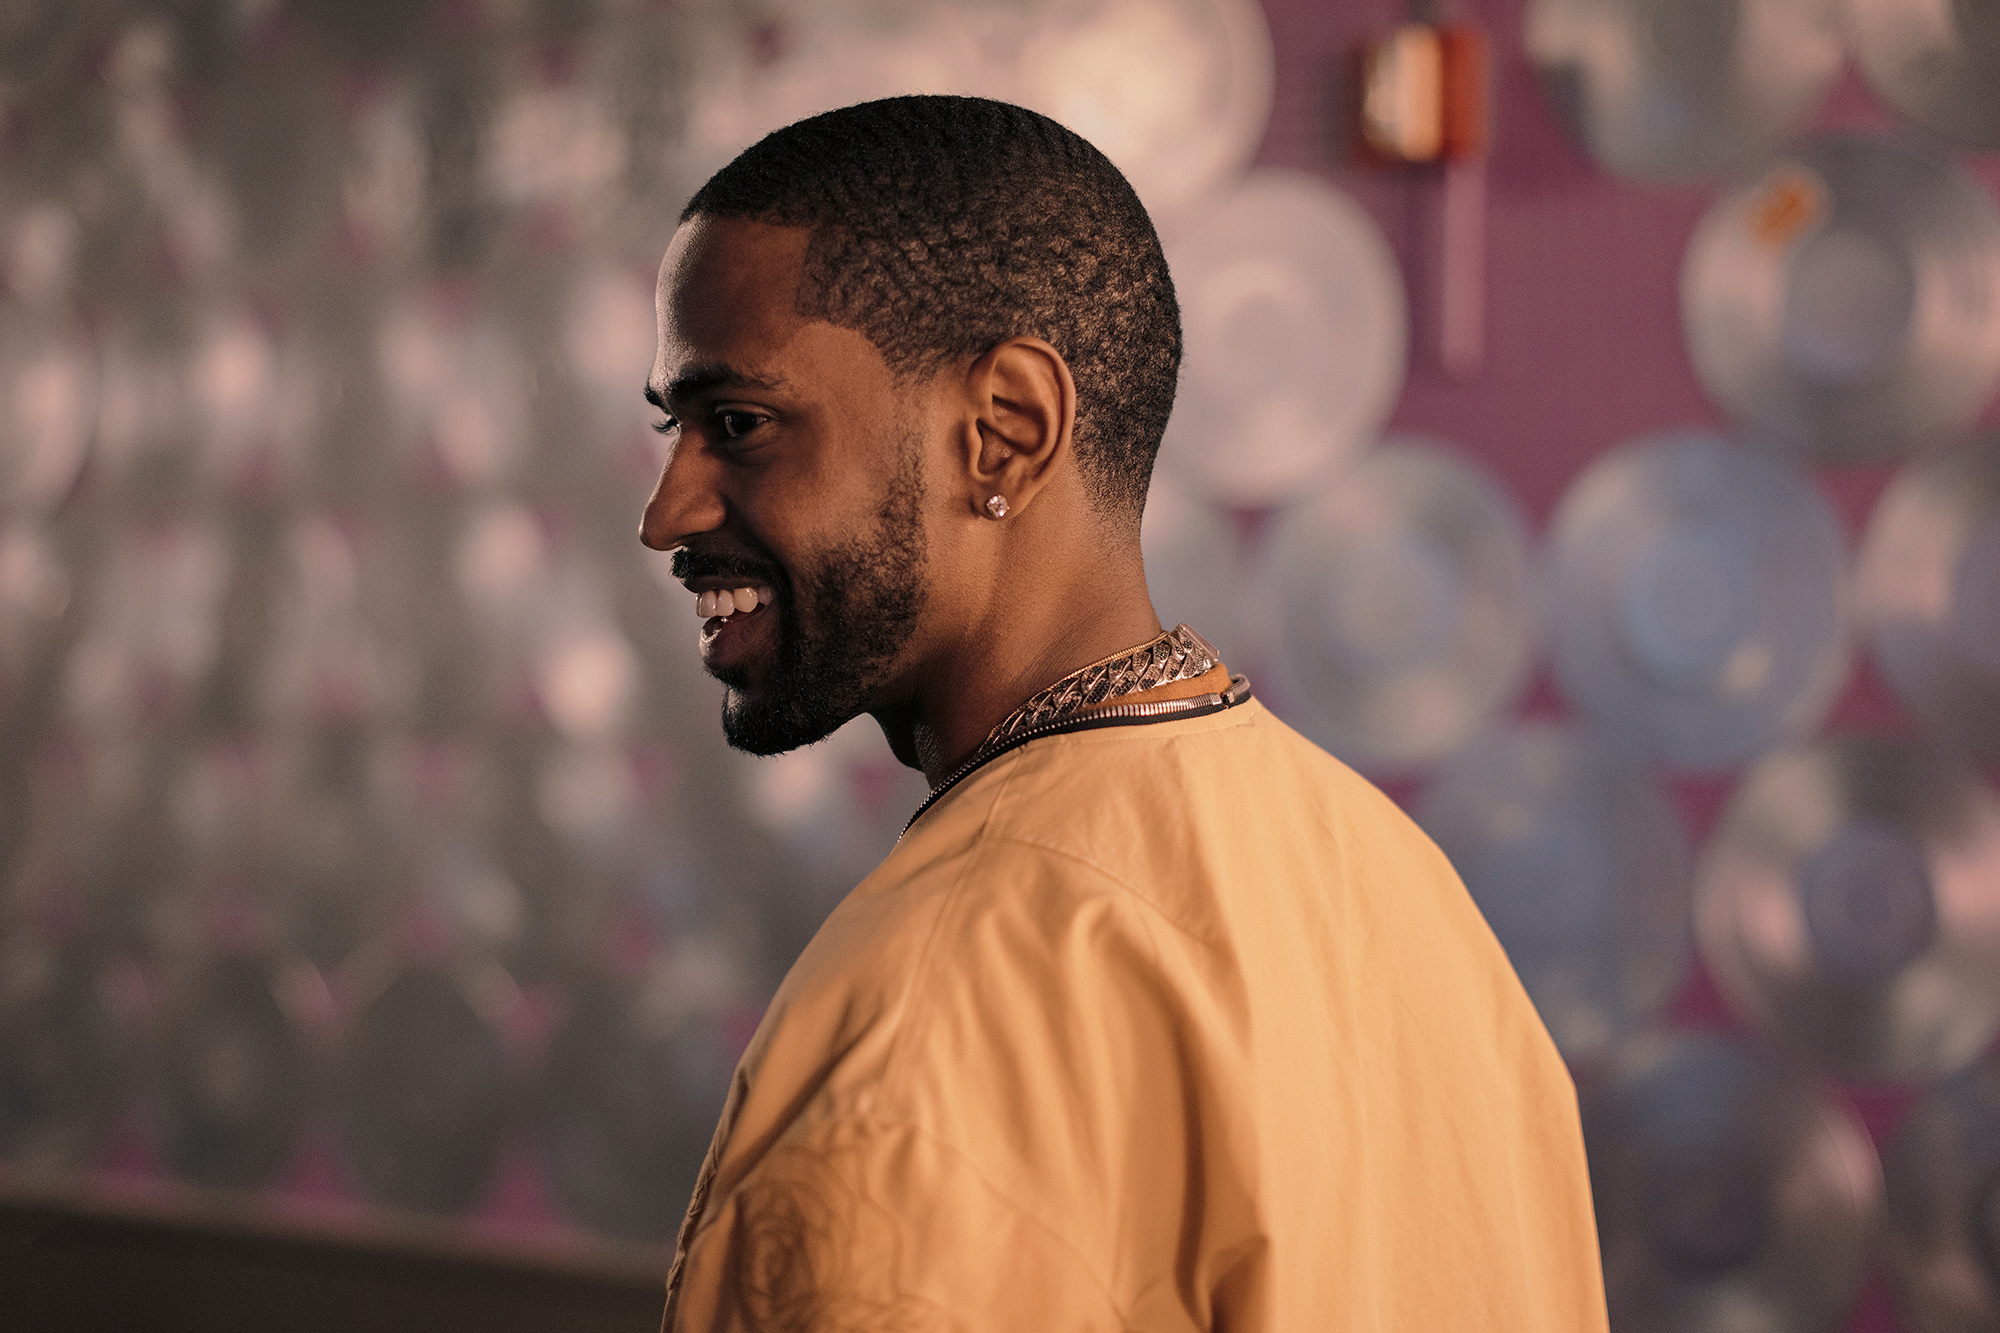 Big Sean, hip hop artist, is photographed backstage at Revention Center in Houston, Texas before the first show of his